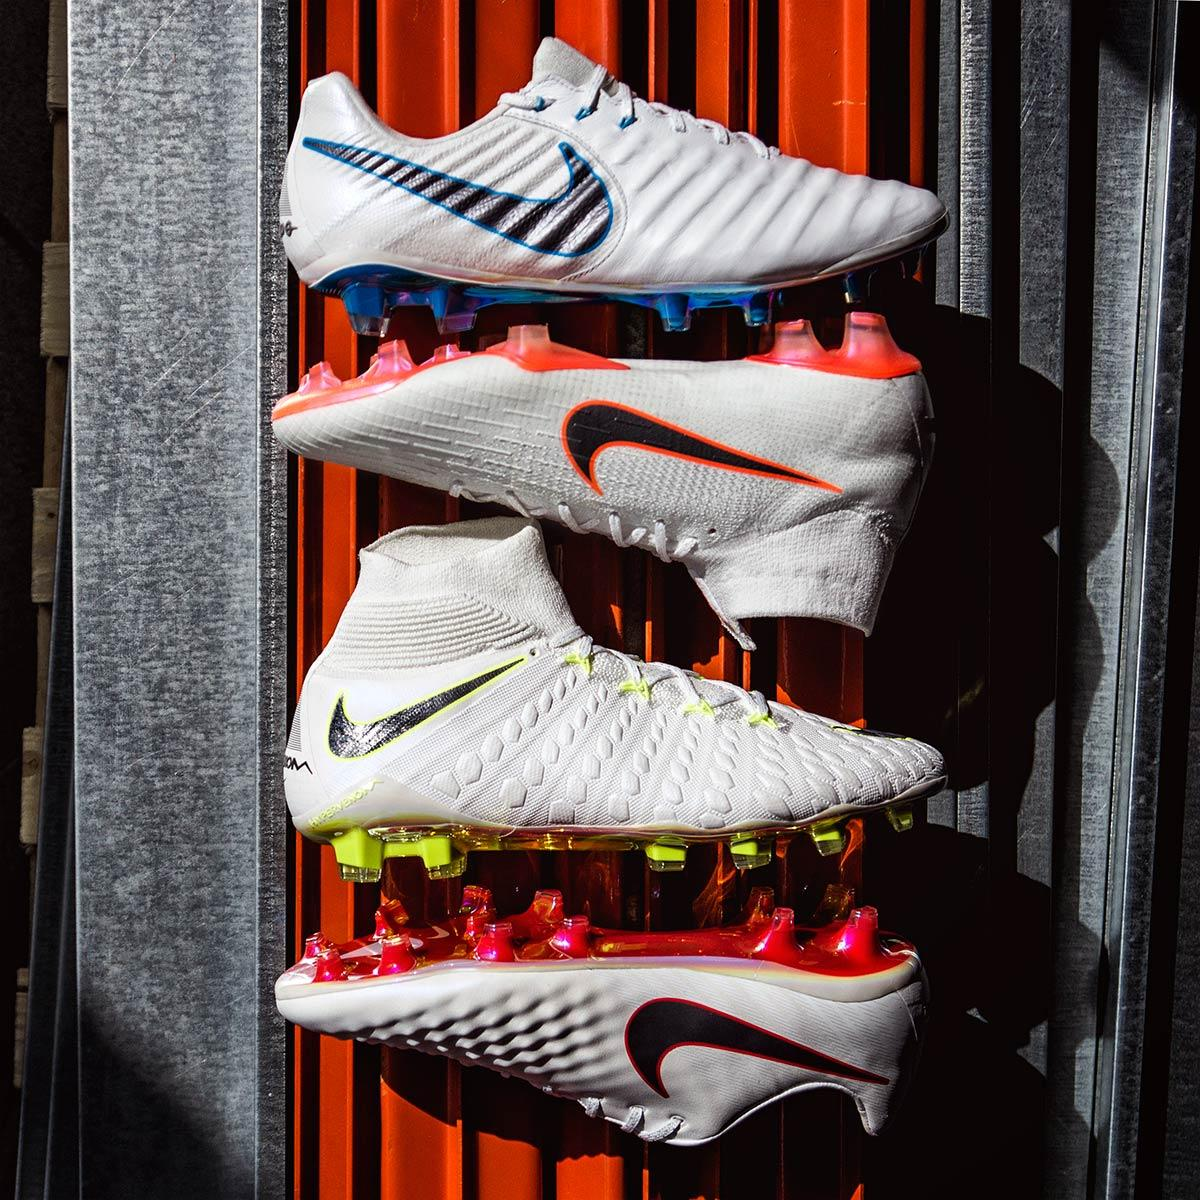 nike-just-do-it-pack-2018-world-cup-football-boots-collection-2